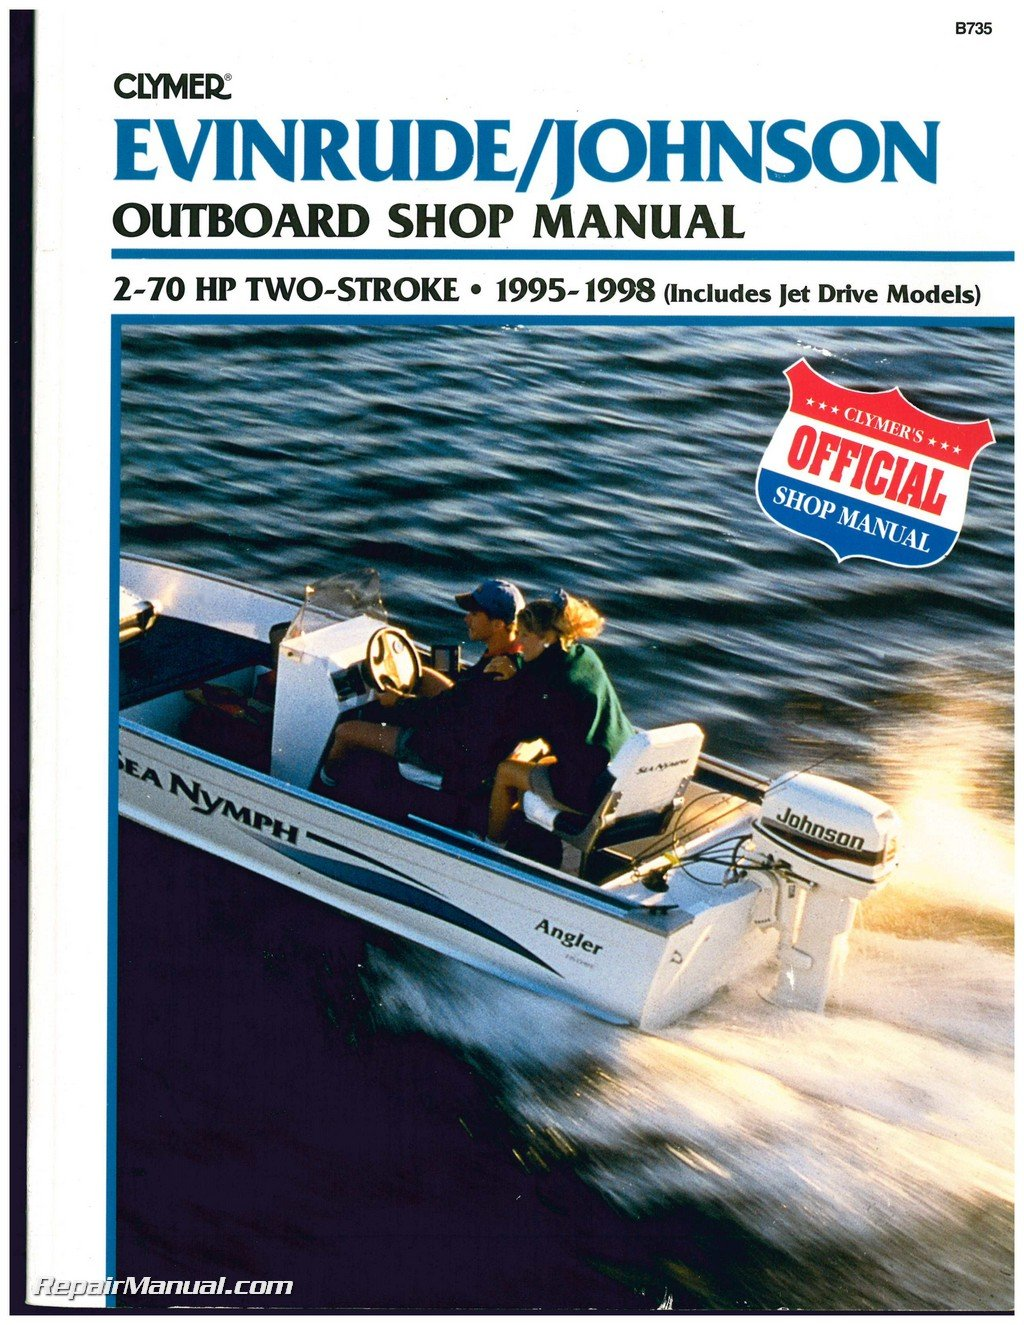 B735 Evinrude Johnson 2-70 HP 2-Stroke Outboard Boat Shop Manual 1995 1996  1997 1998: Manufacturer: Amazon.com: Books